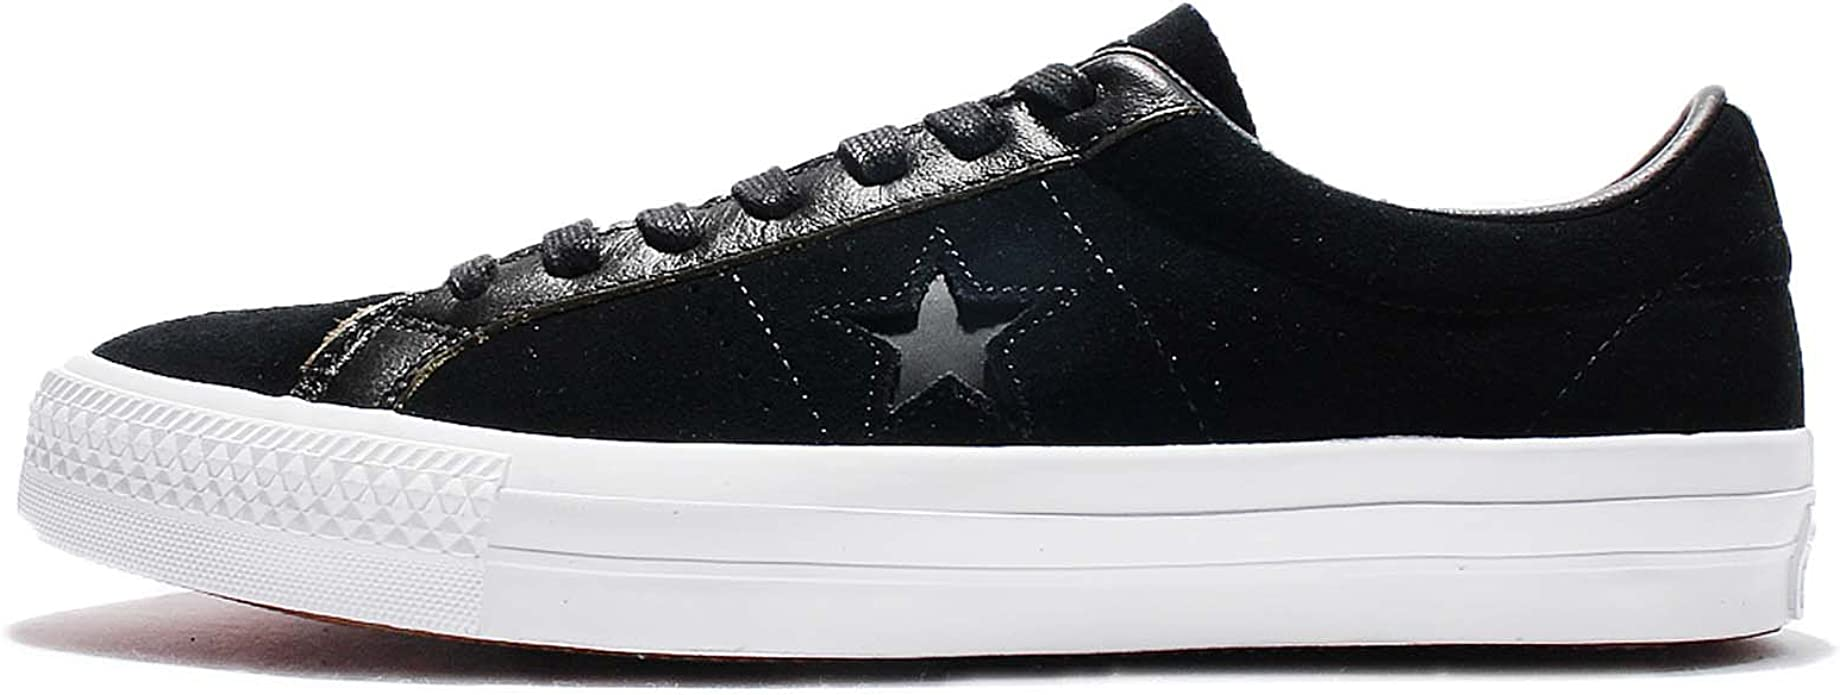 converse one star pro leather